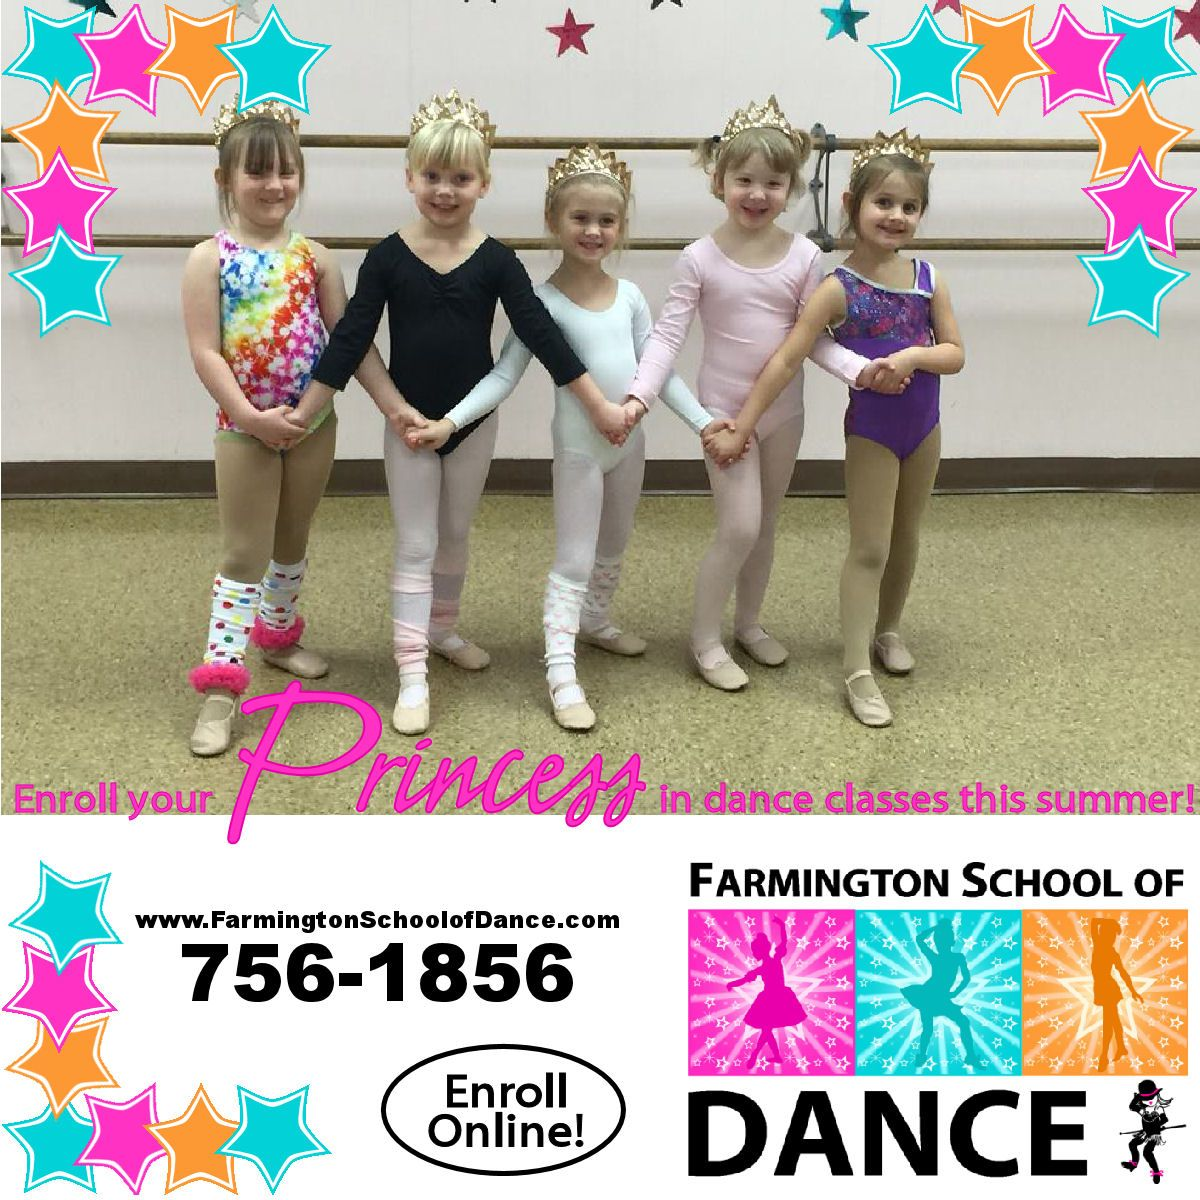 Looking For A Summer Activity For Your 3 15 Year Old Summer Is A Great Time To Try Out Dance Our 6 Lesson Summer Dance Sessi Dance Dance Class Class Pictures